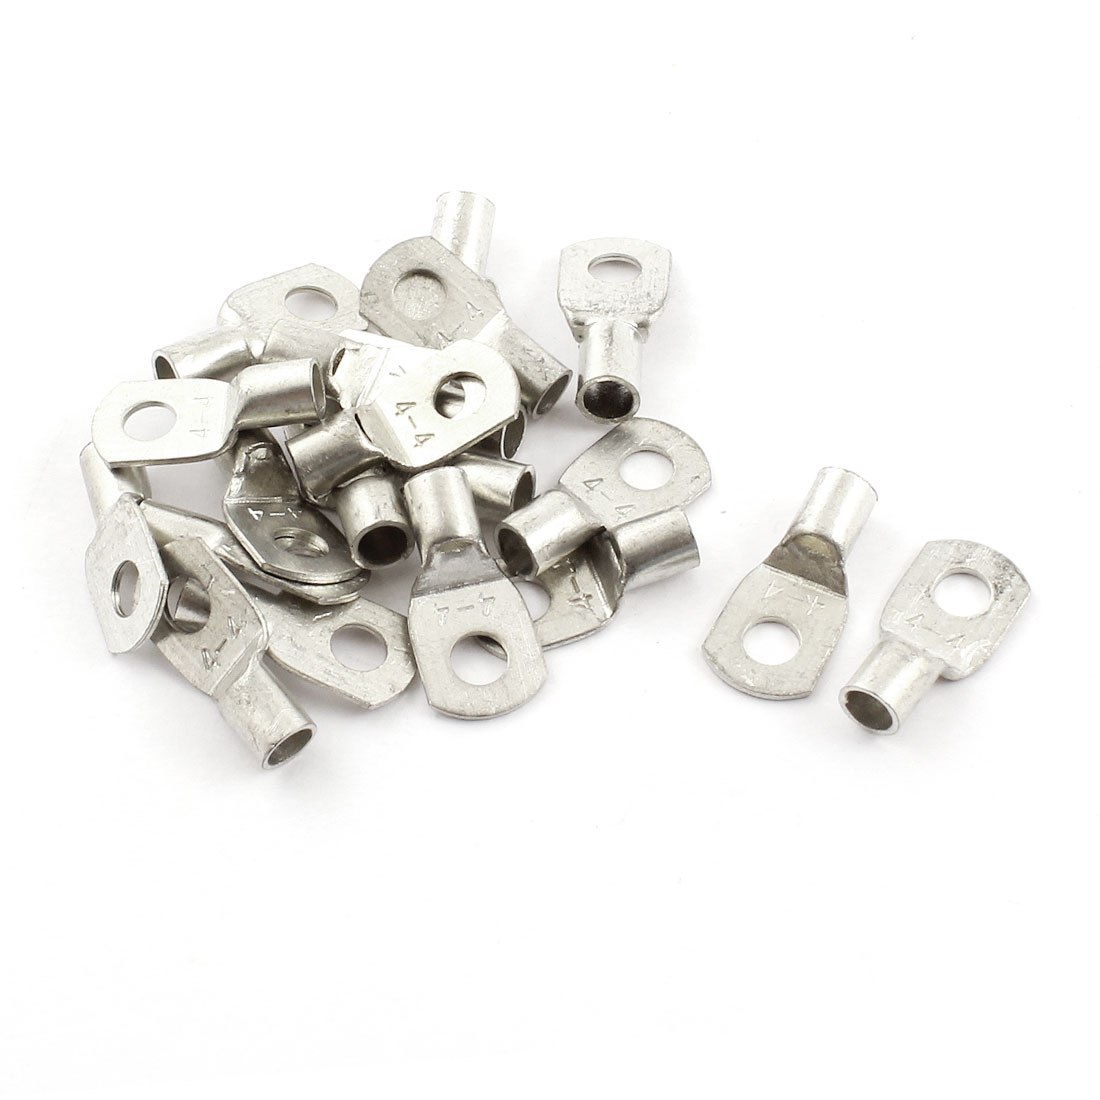 "20 Pcs SC2.5-4 4mm2 Cable Copper Lug Terminal Connector Silver Tone for 0.16"" Dia Bolt"